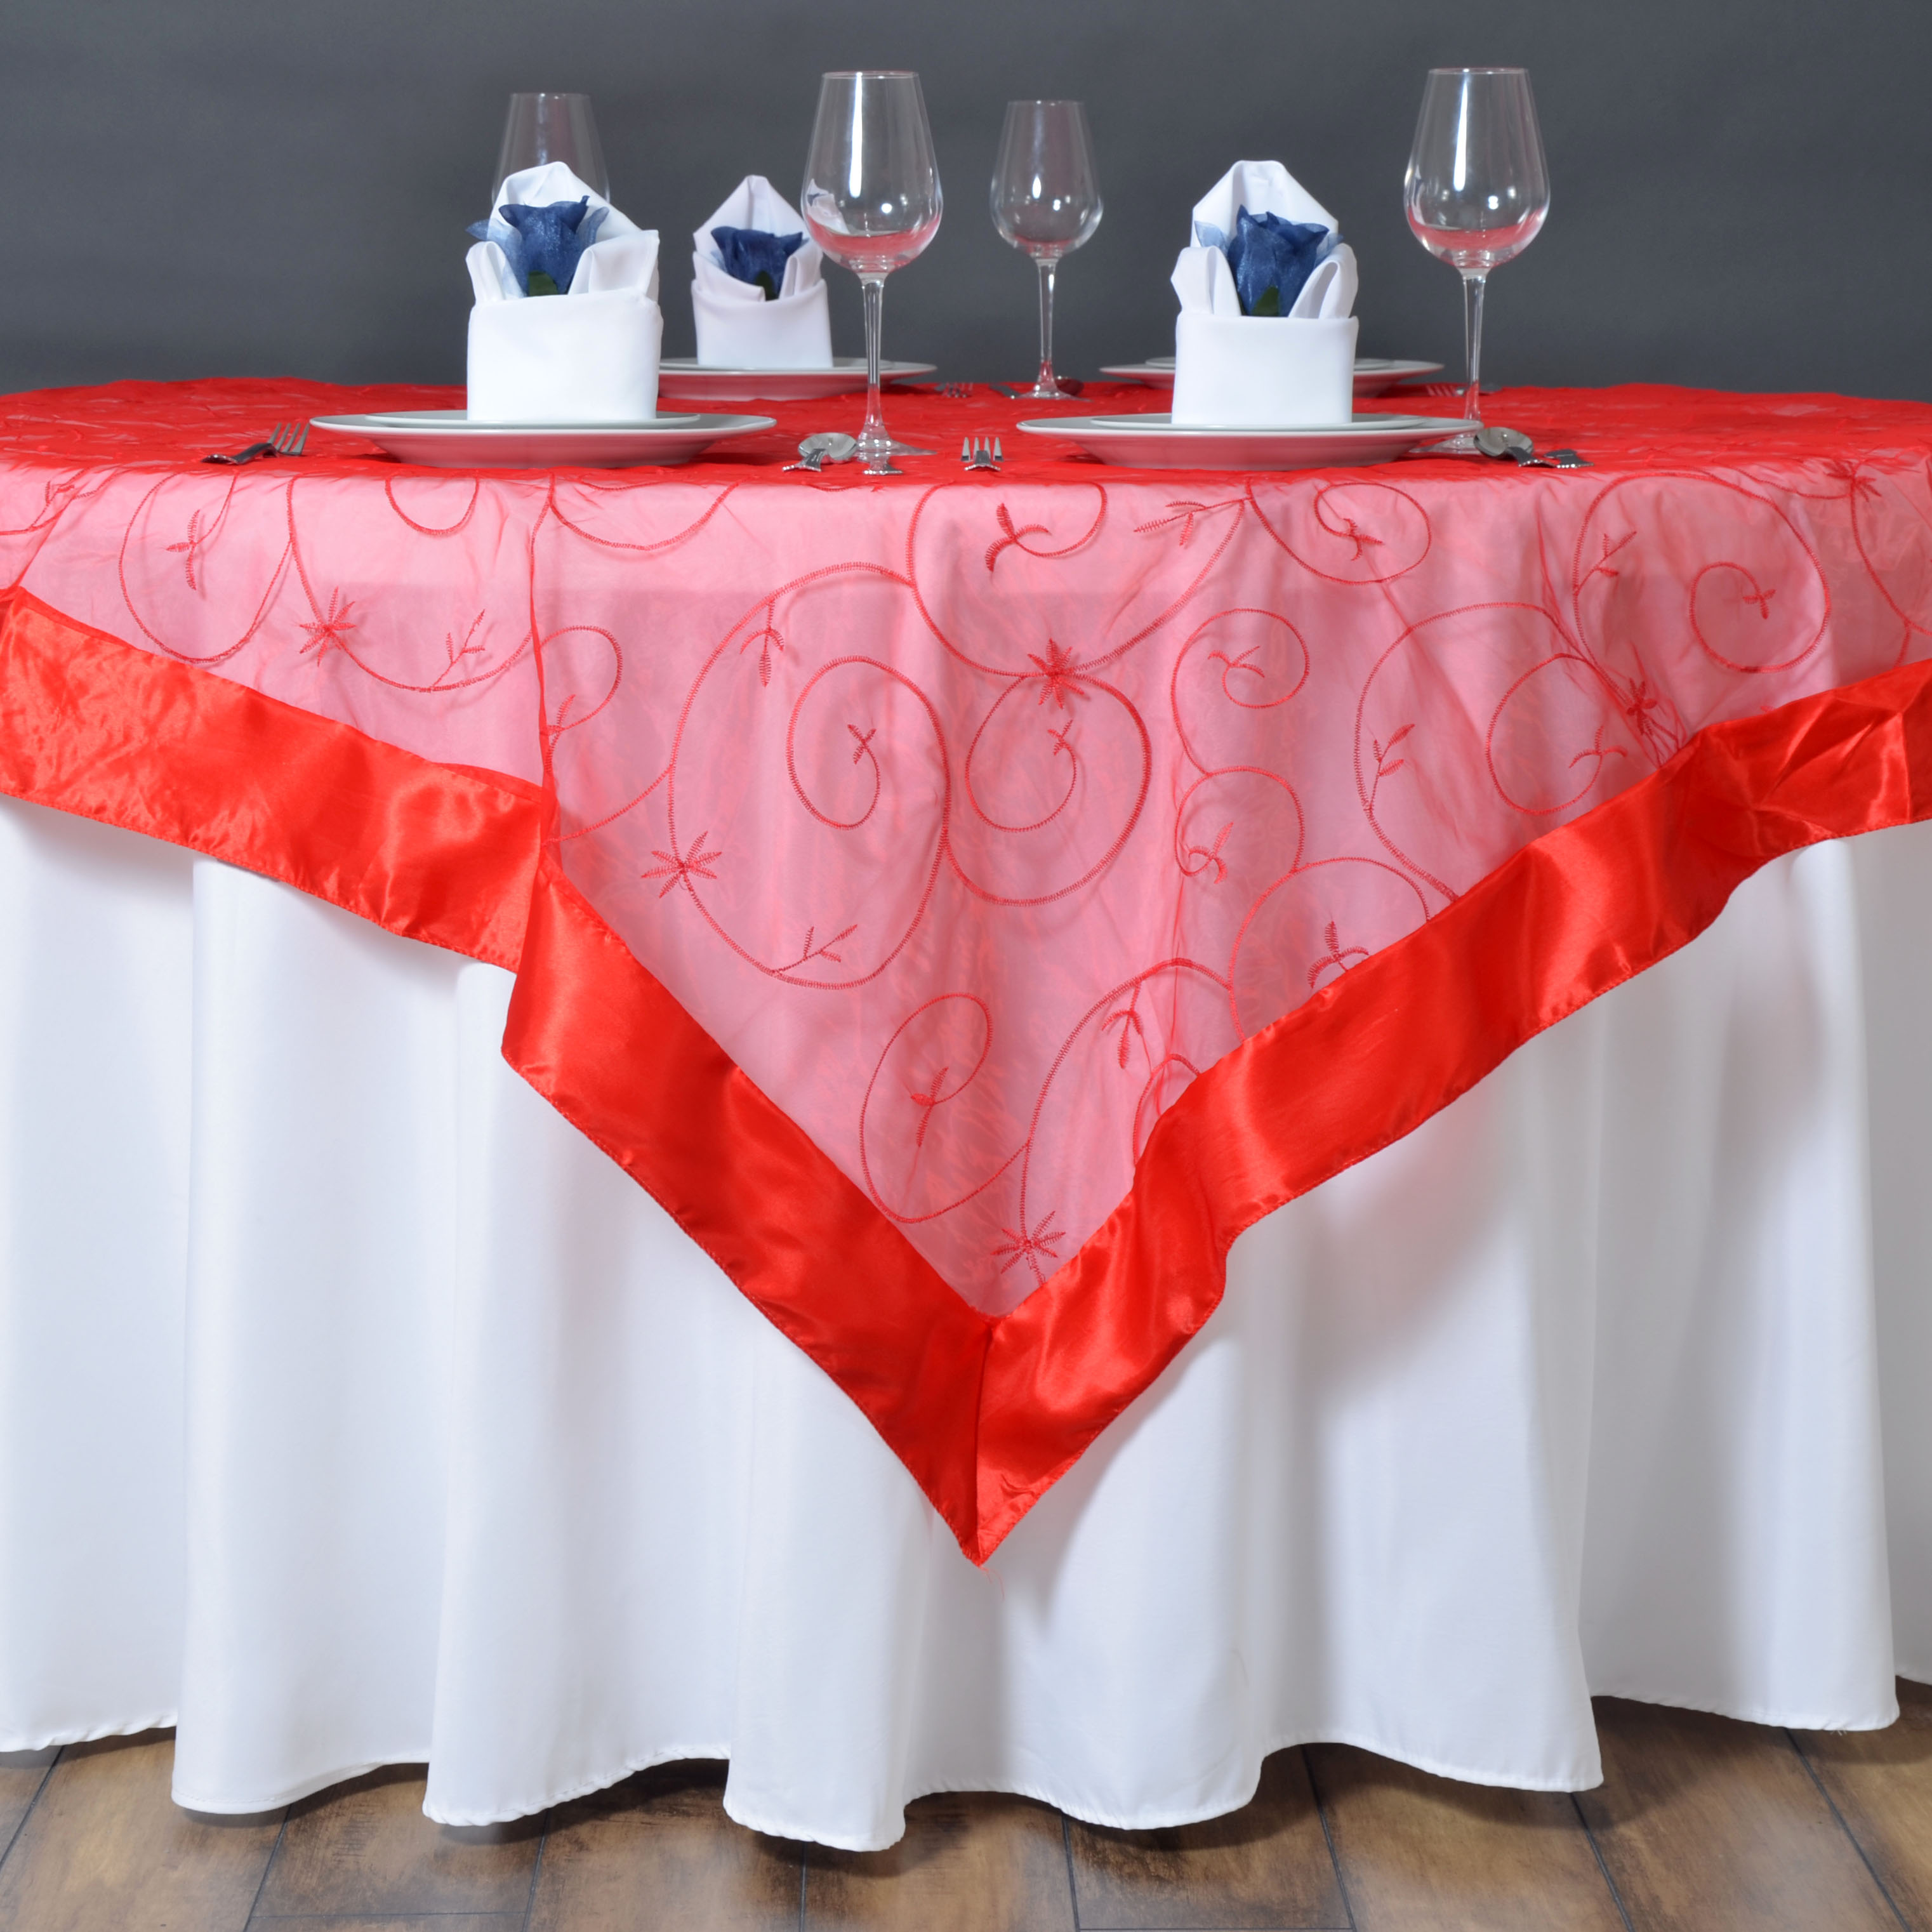 15 Pcs 85x85 034 Embroidered Sheer Organza TABLE